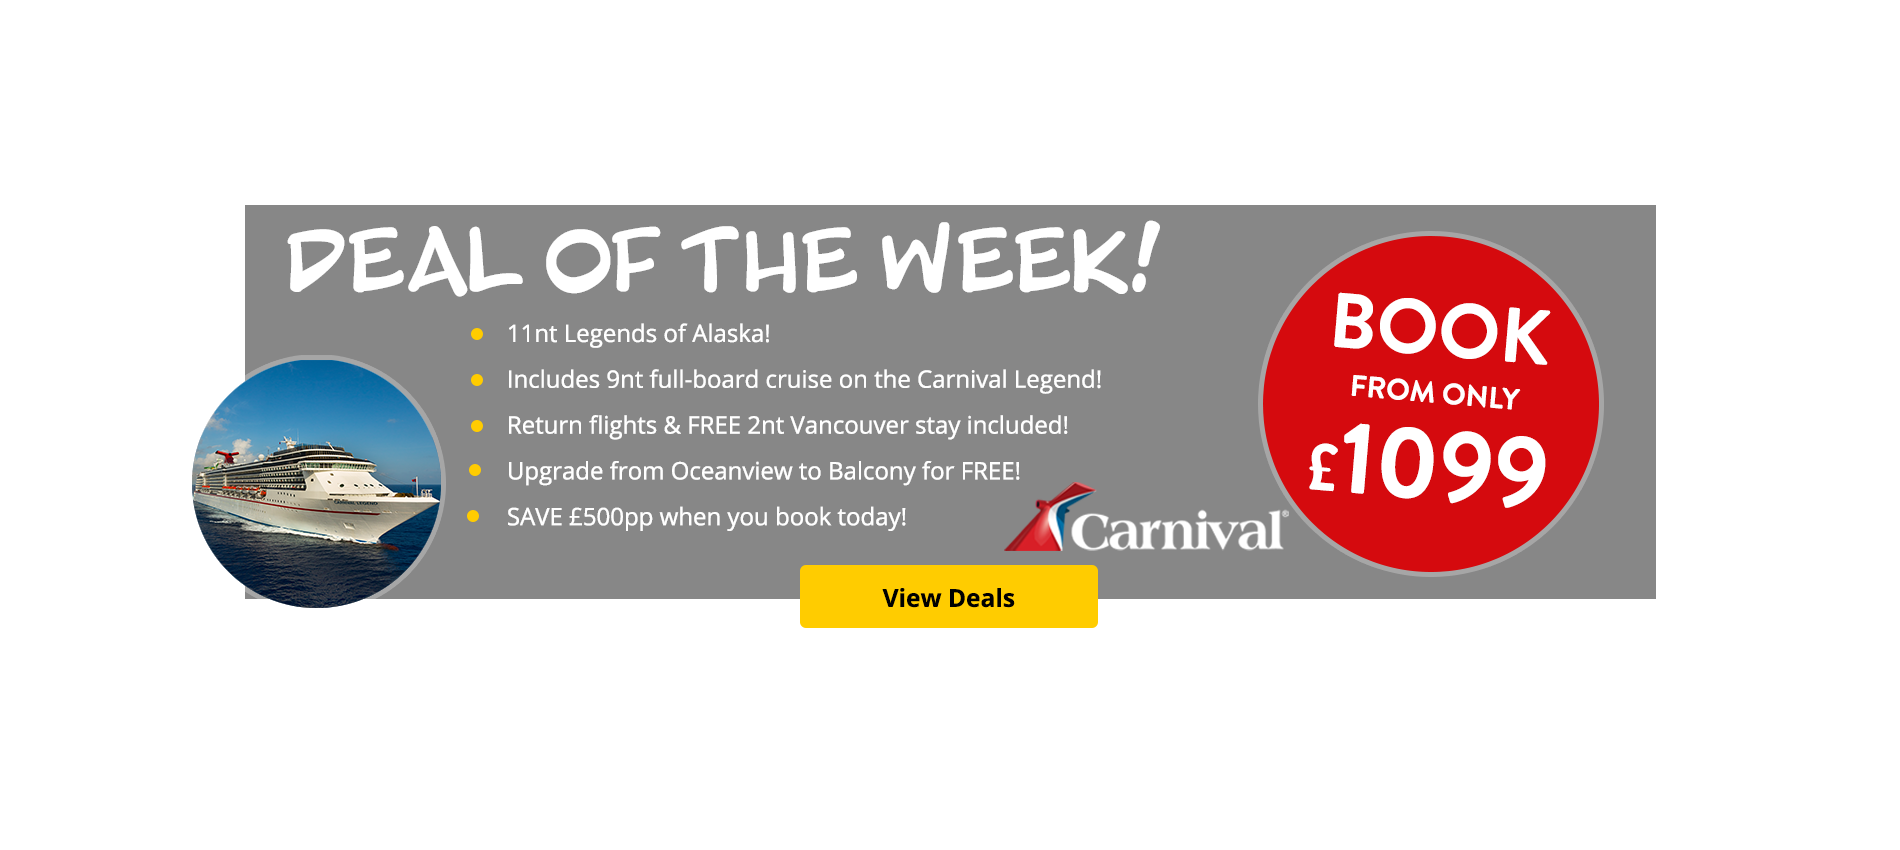 Deal of the week! 11nt Legends of Alaska with Carnvial Cruise Line.